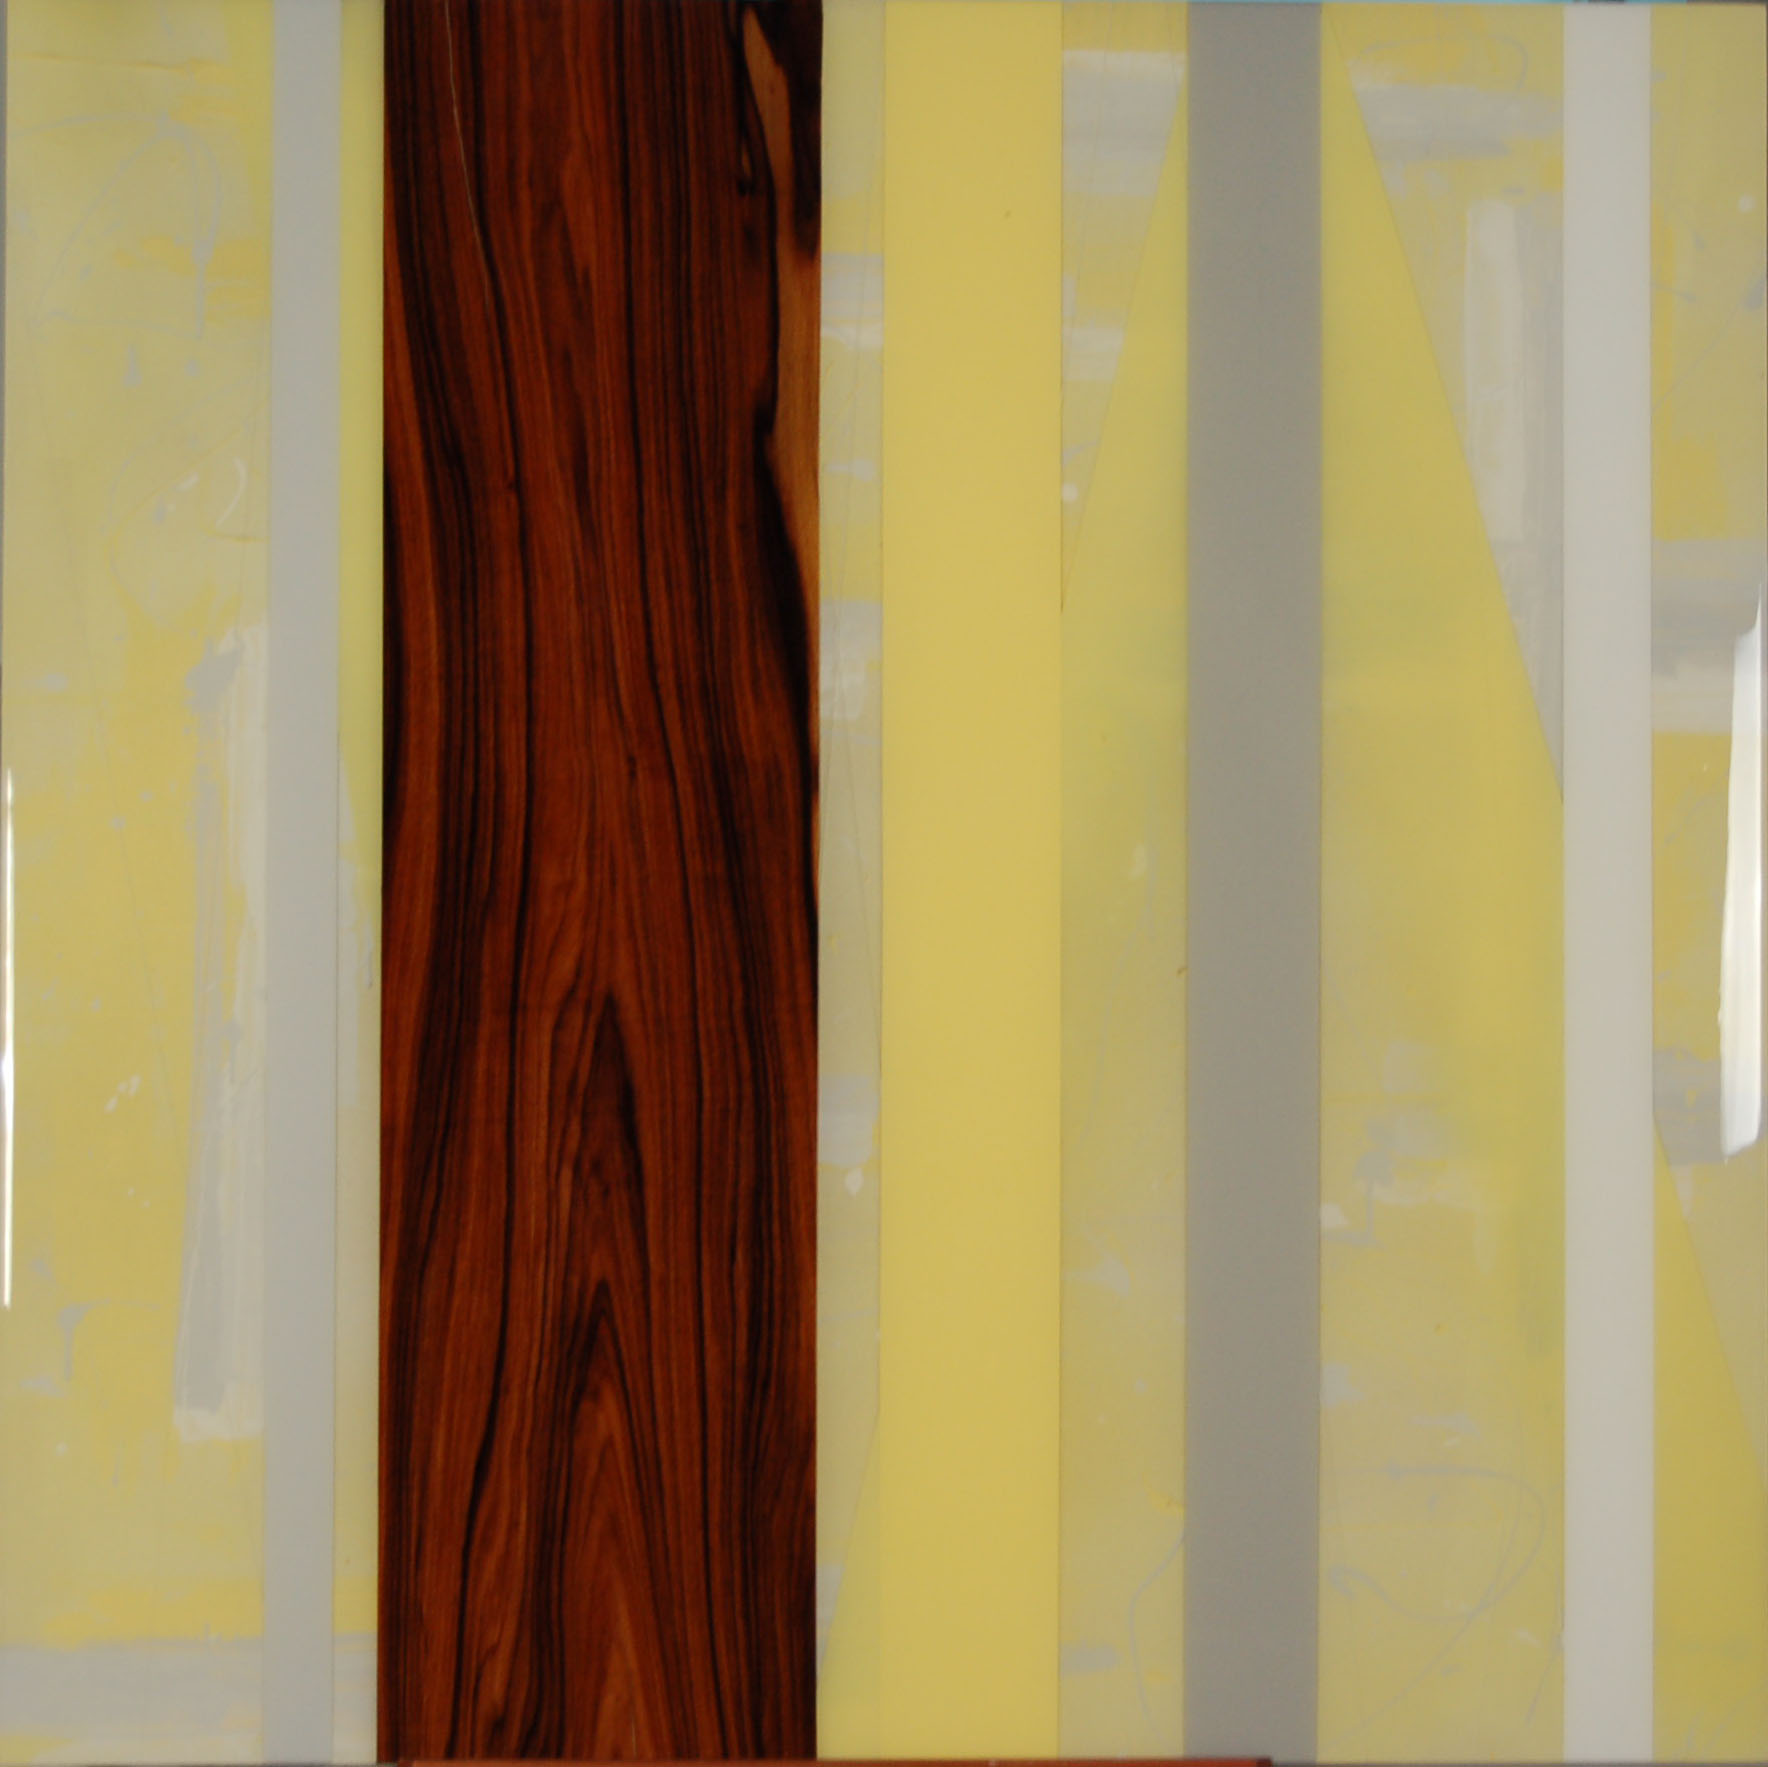 KH-017, Untitled (yellow), Acrylic Paint, Rosewood, Resin, 2015, 40%22 X 40%22  .jpg